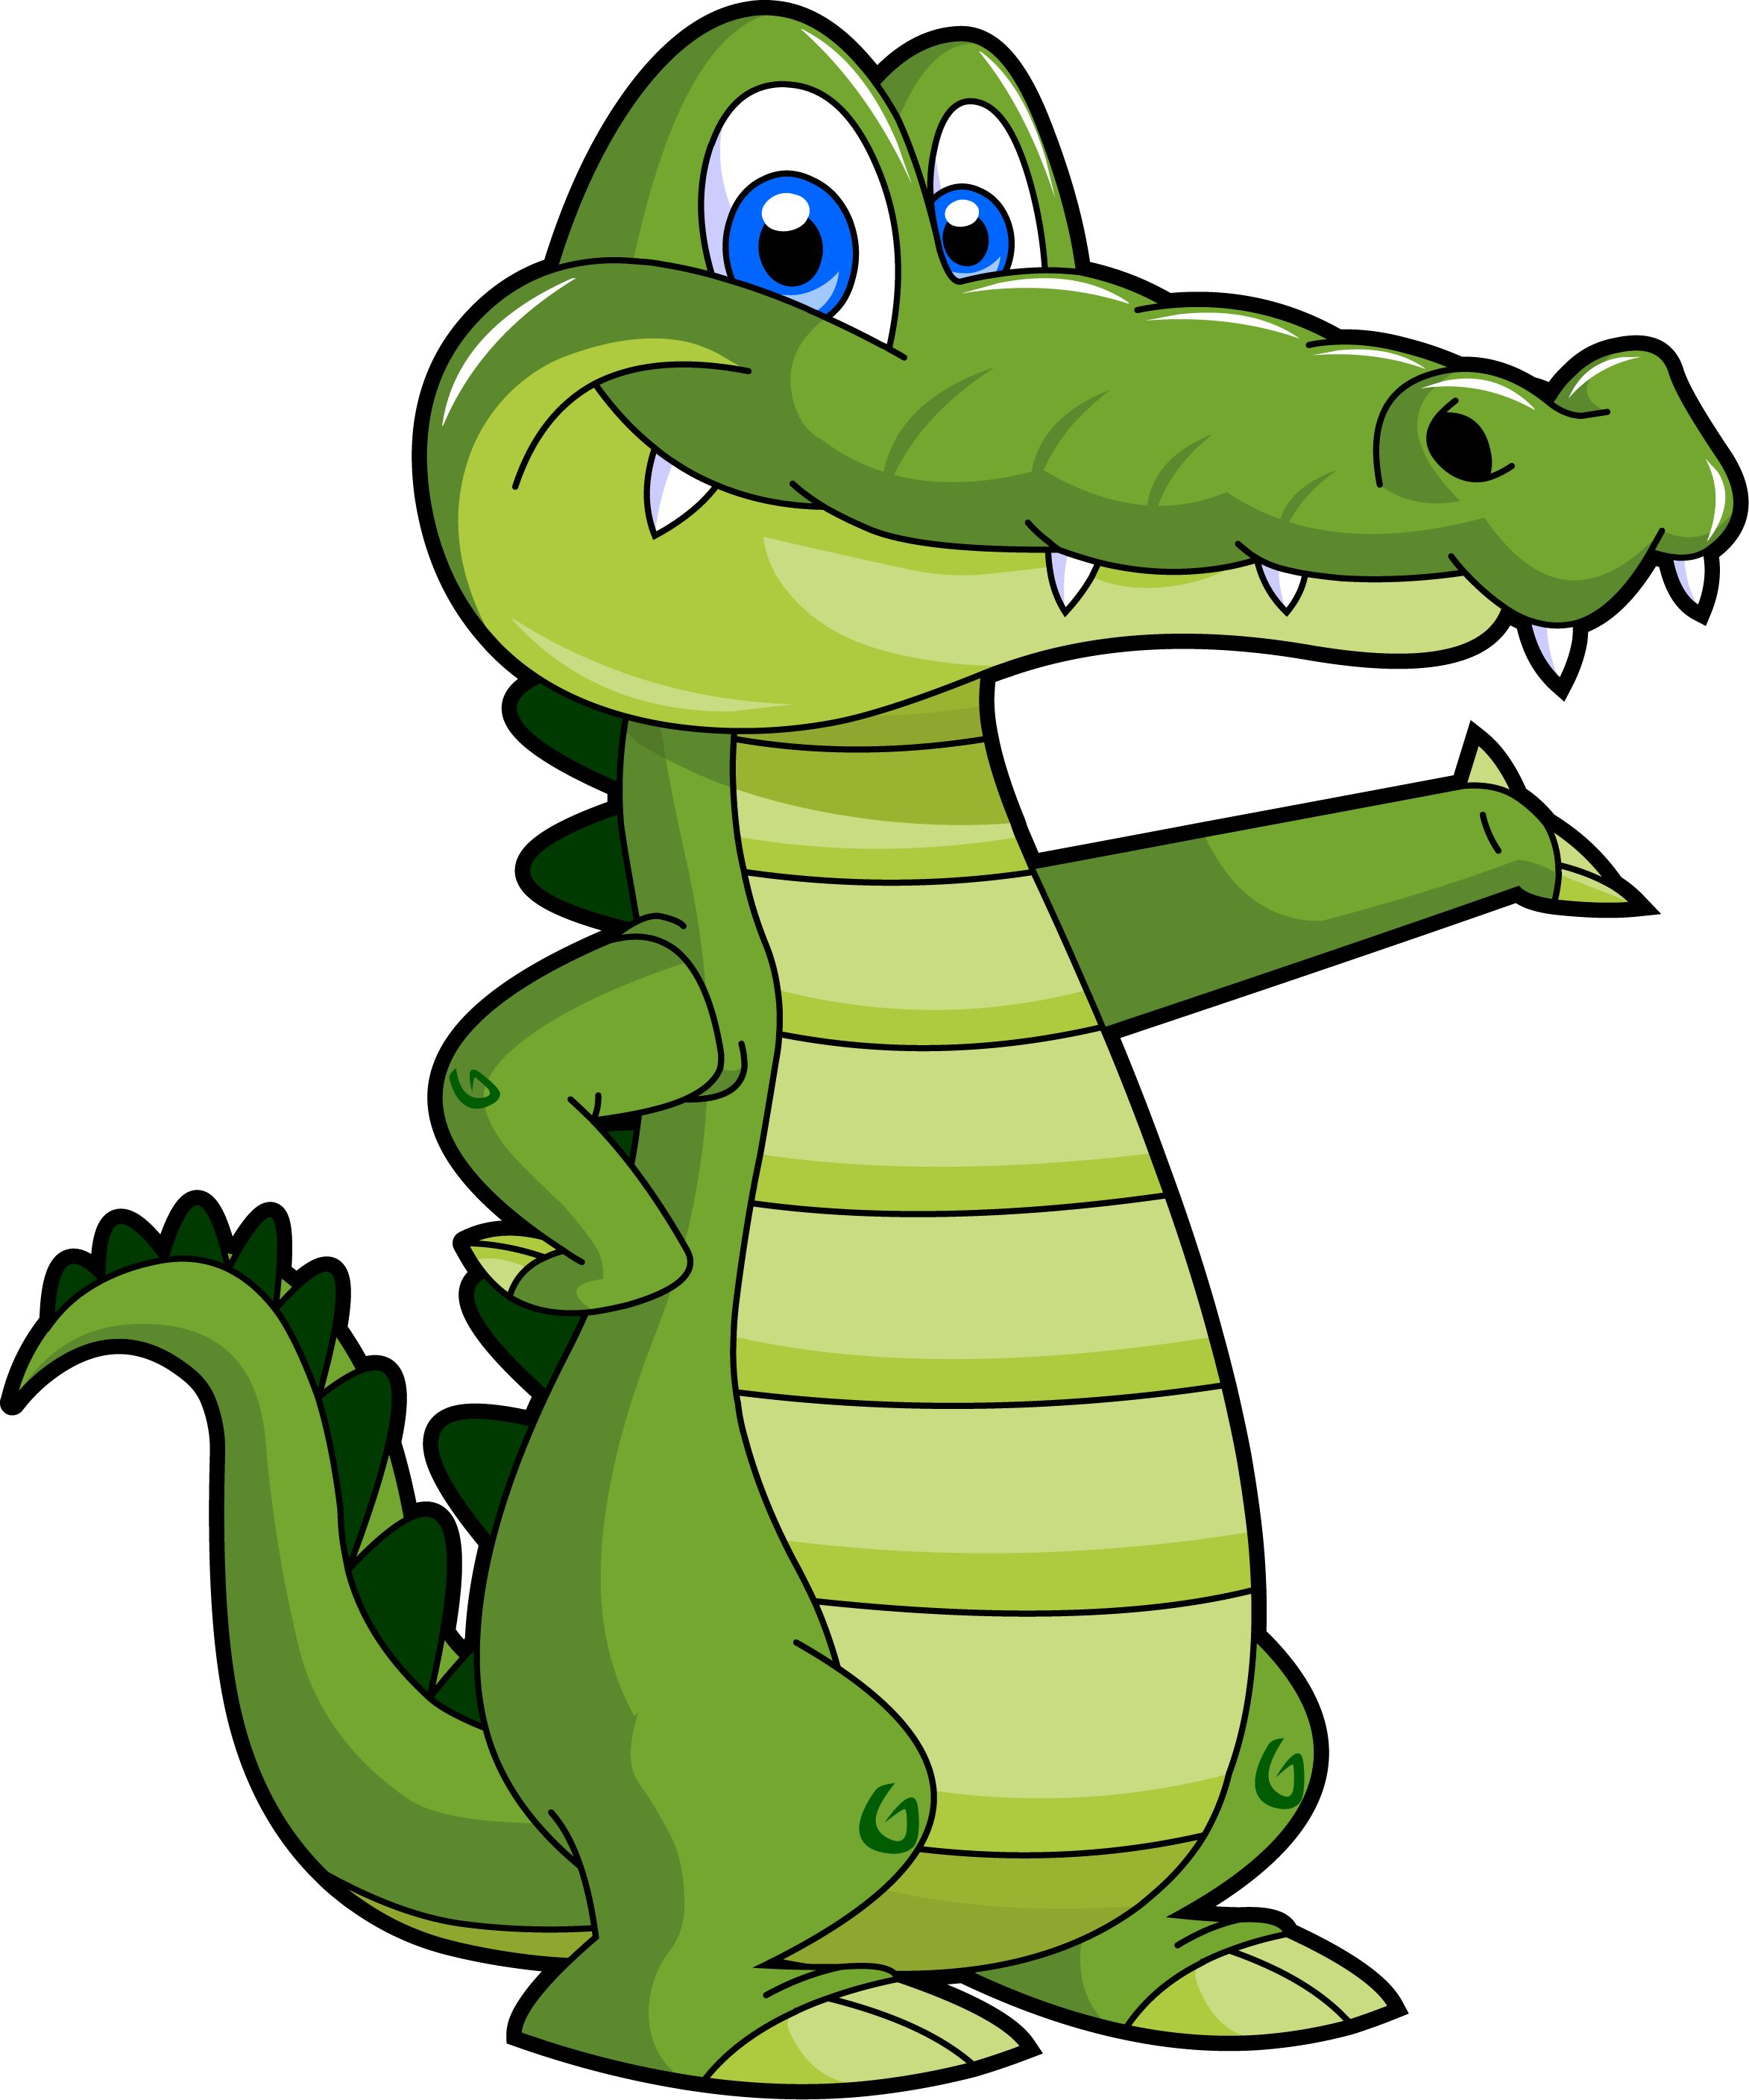 Sick clipart germ Free Images Clipart Alligator cute%20alligator%20clipart